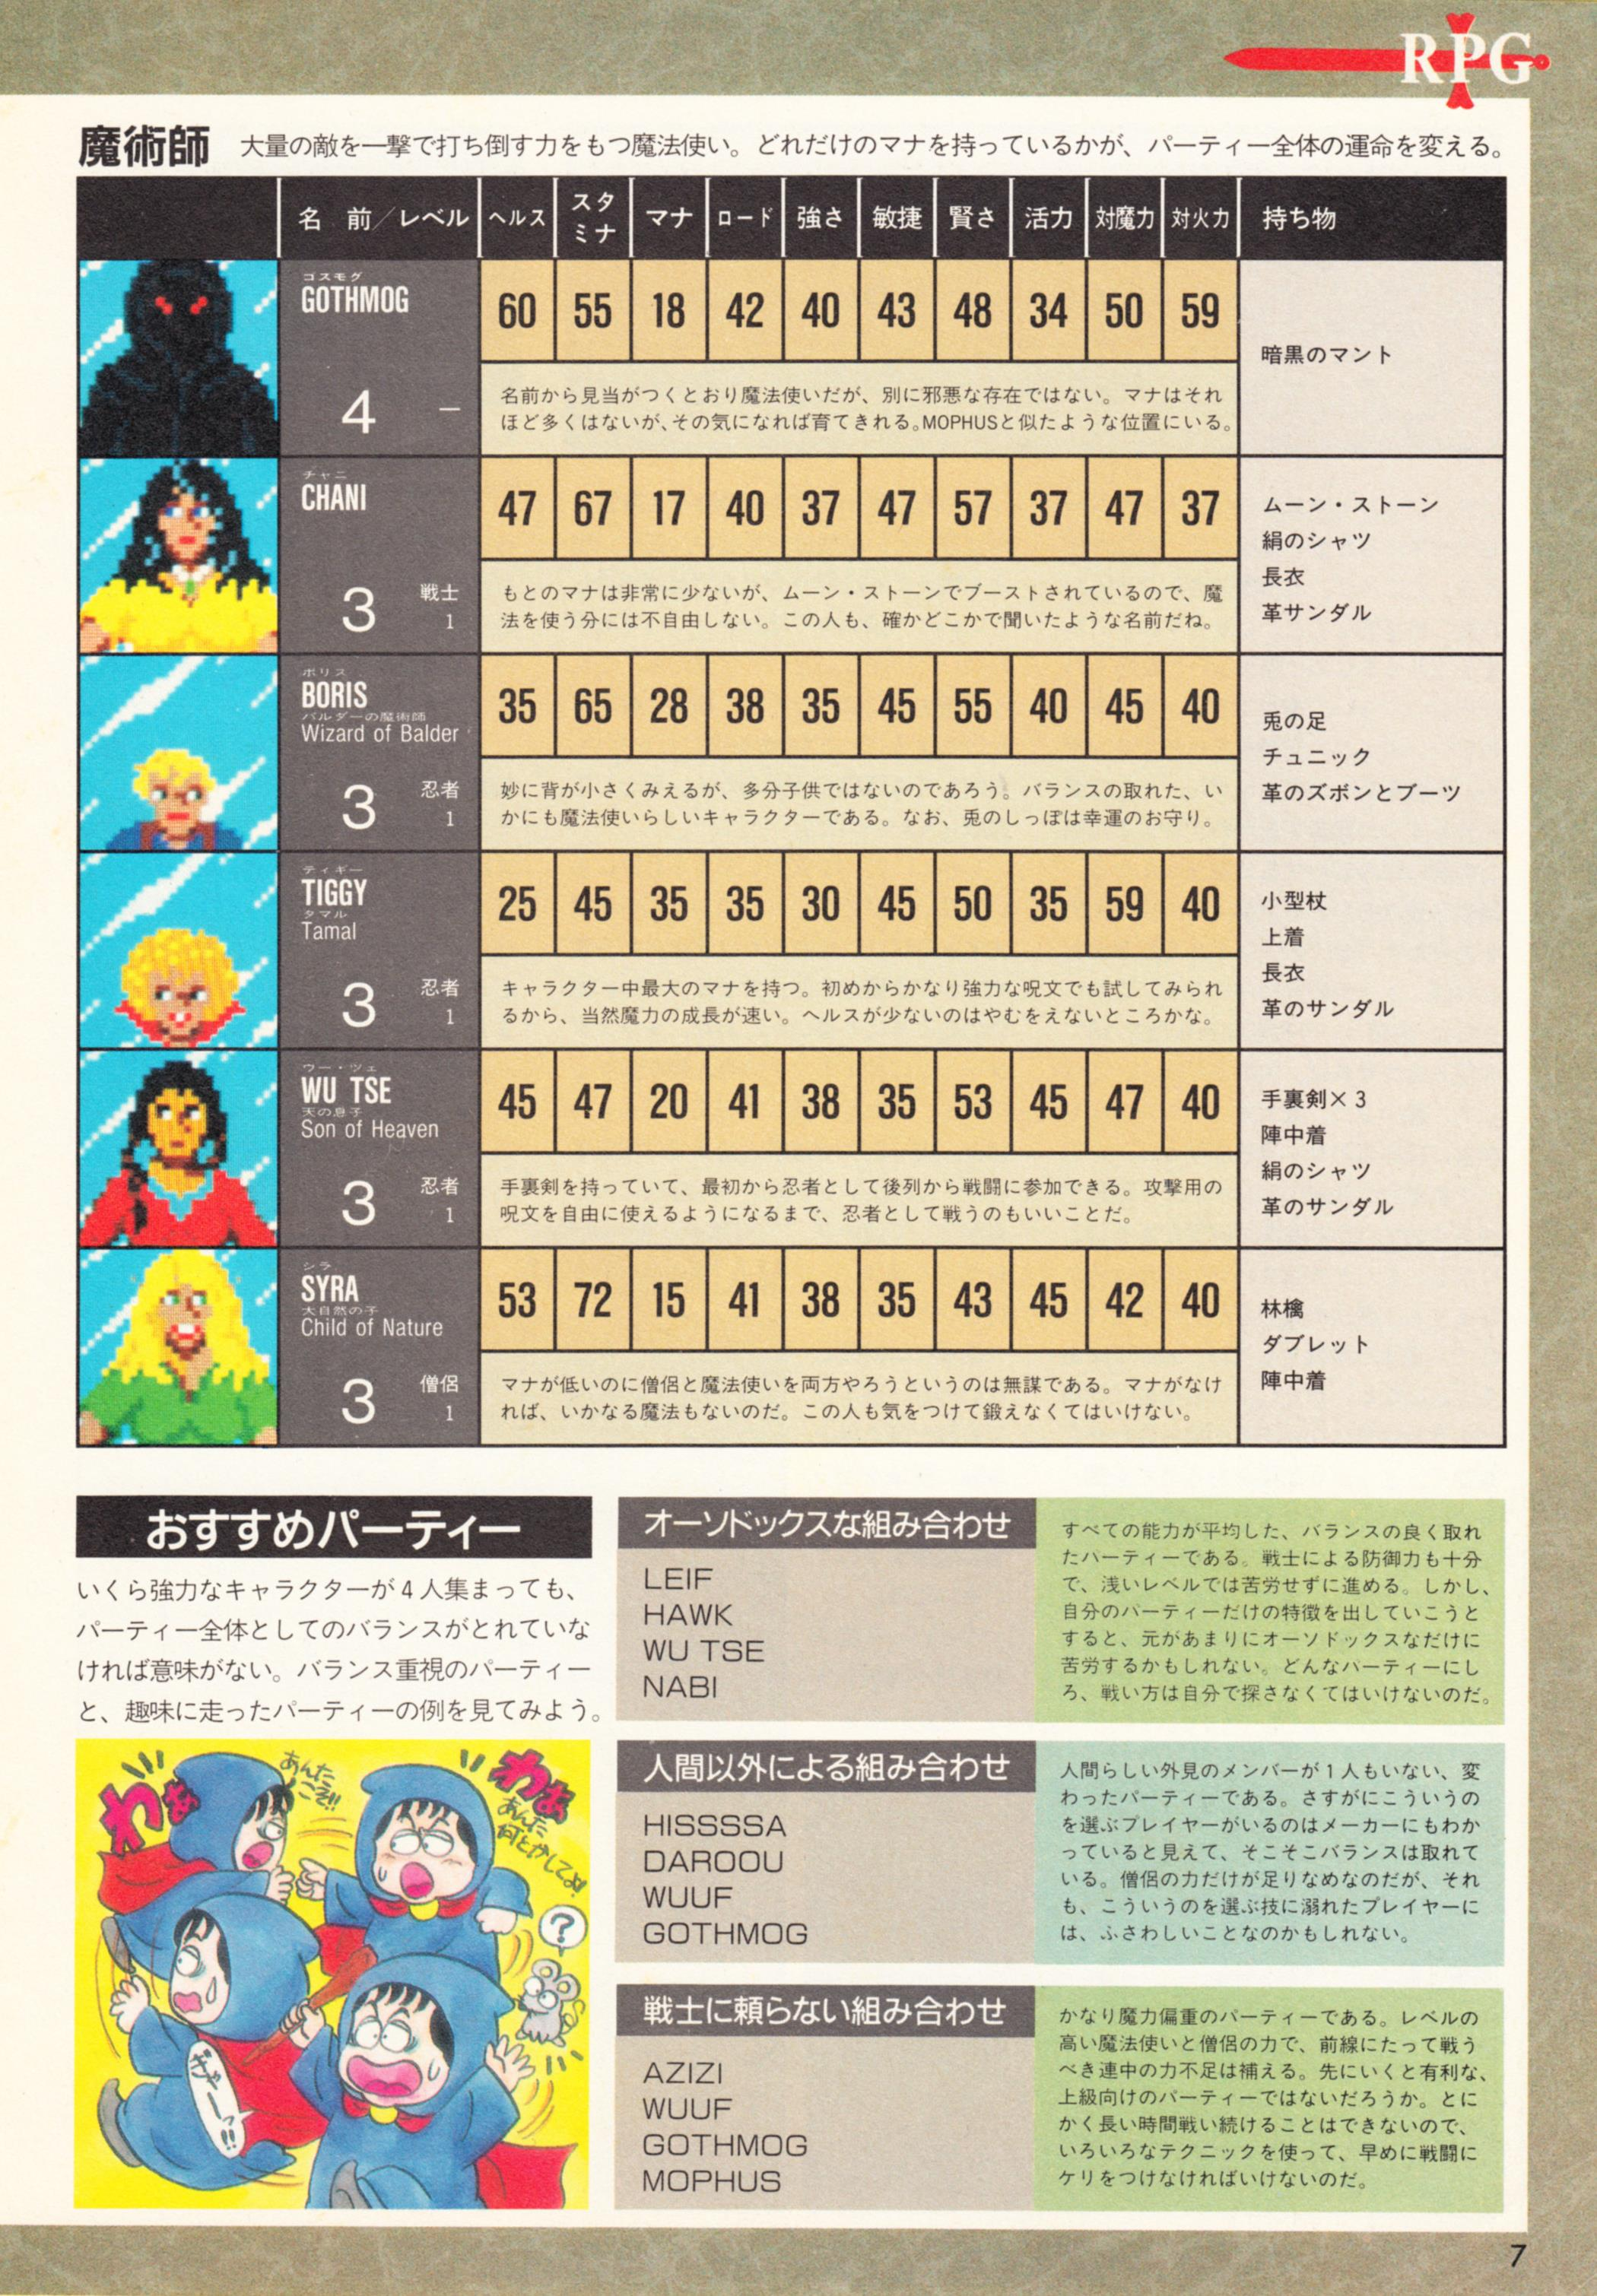 Special Supplement 2 - Dungeon Master Guide published in Japanese magazine 'Login', Vol 9 No 3 02 February 1990, Page 7